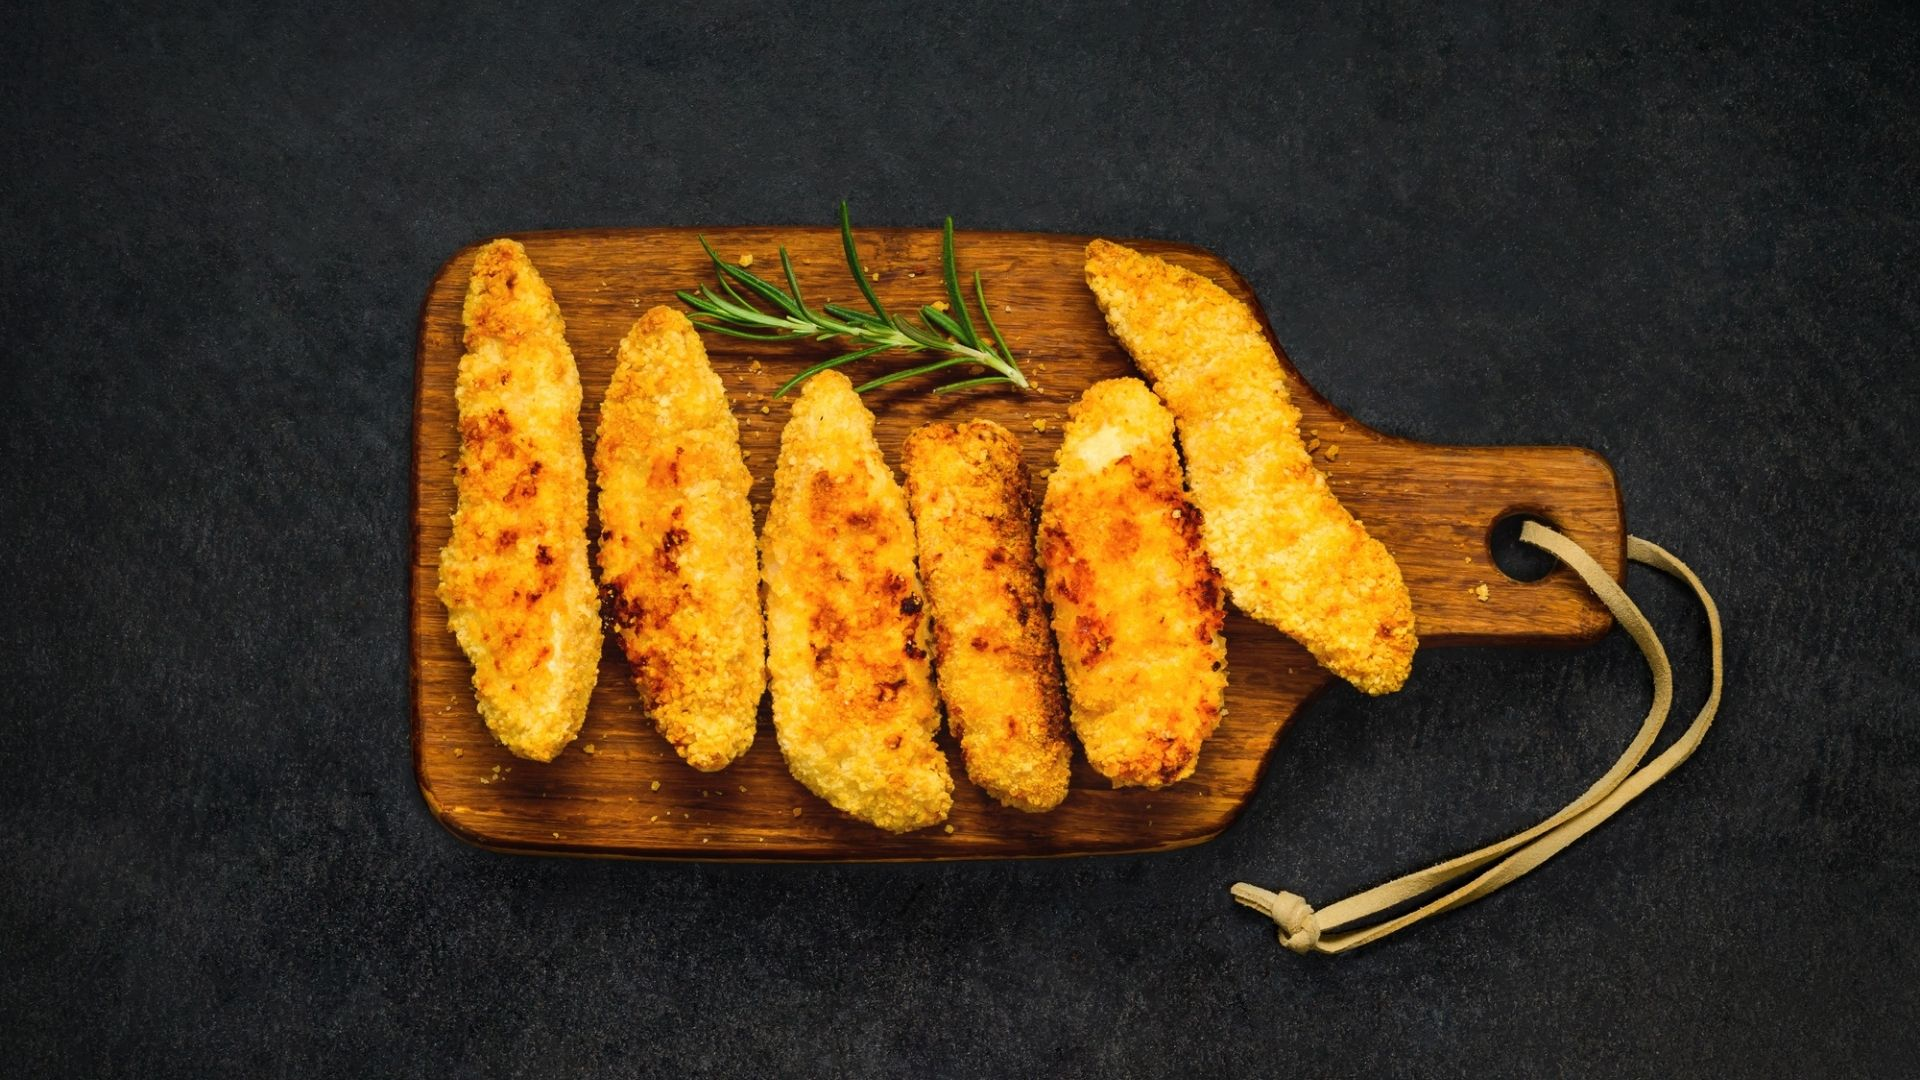 Chicken Fingers from a Toaster Oven 7